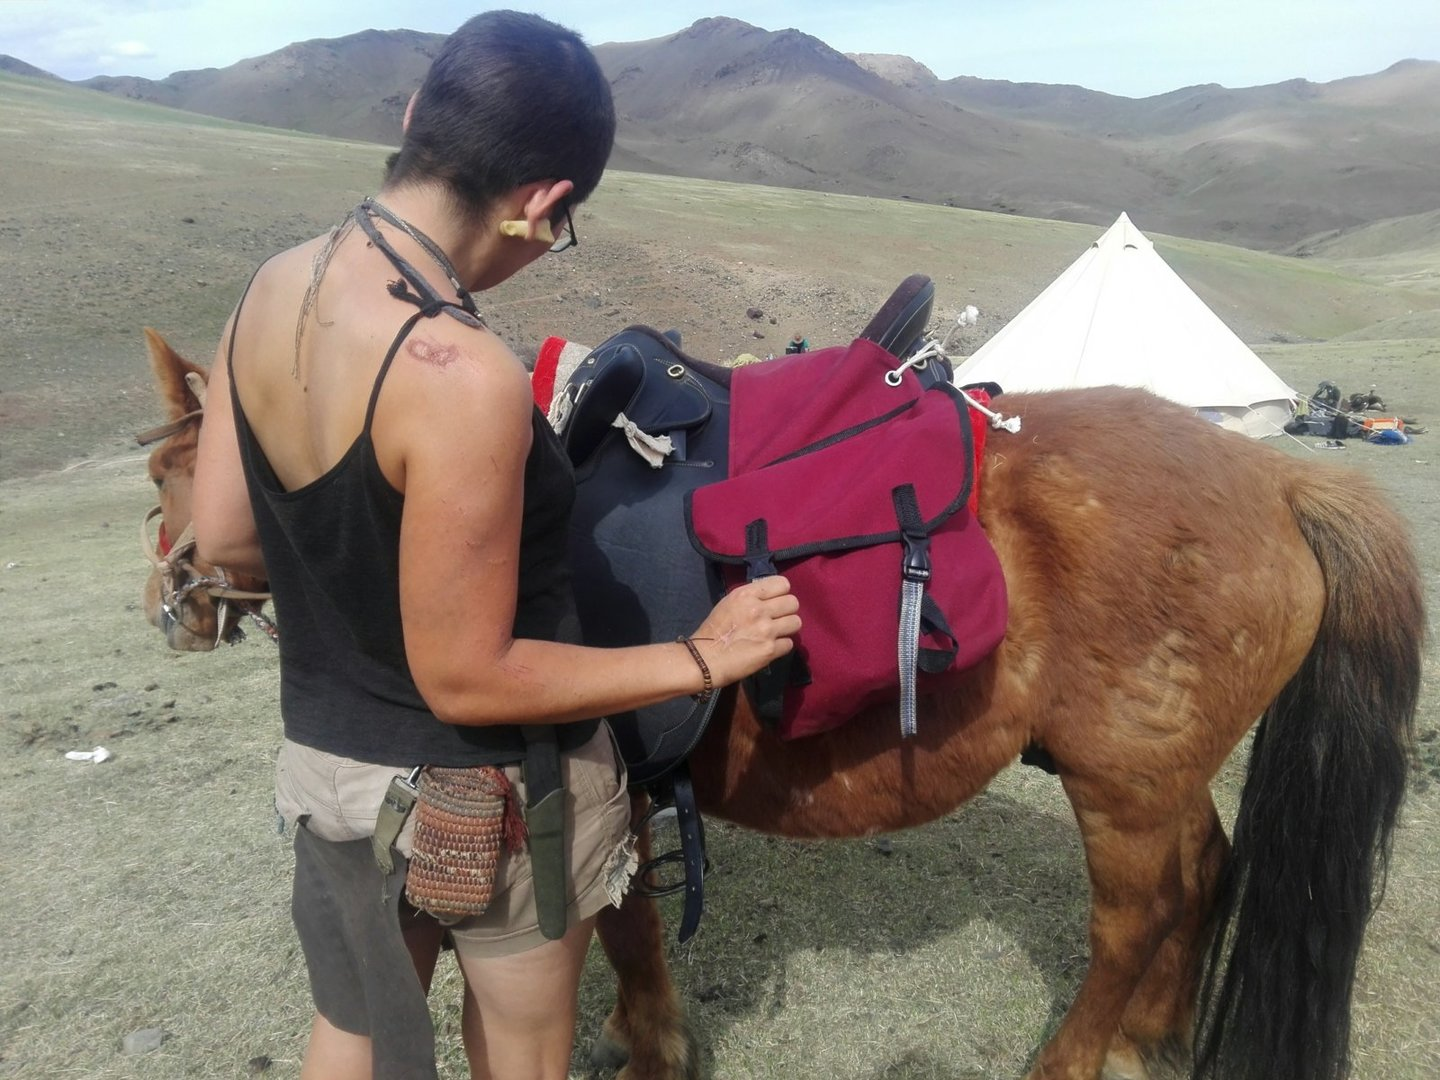 img_20160531_232759-jpg.40815_Polvo the Mongolian Horse_Furry Nomads_Squat the Planet_{posttime}